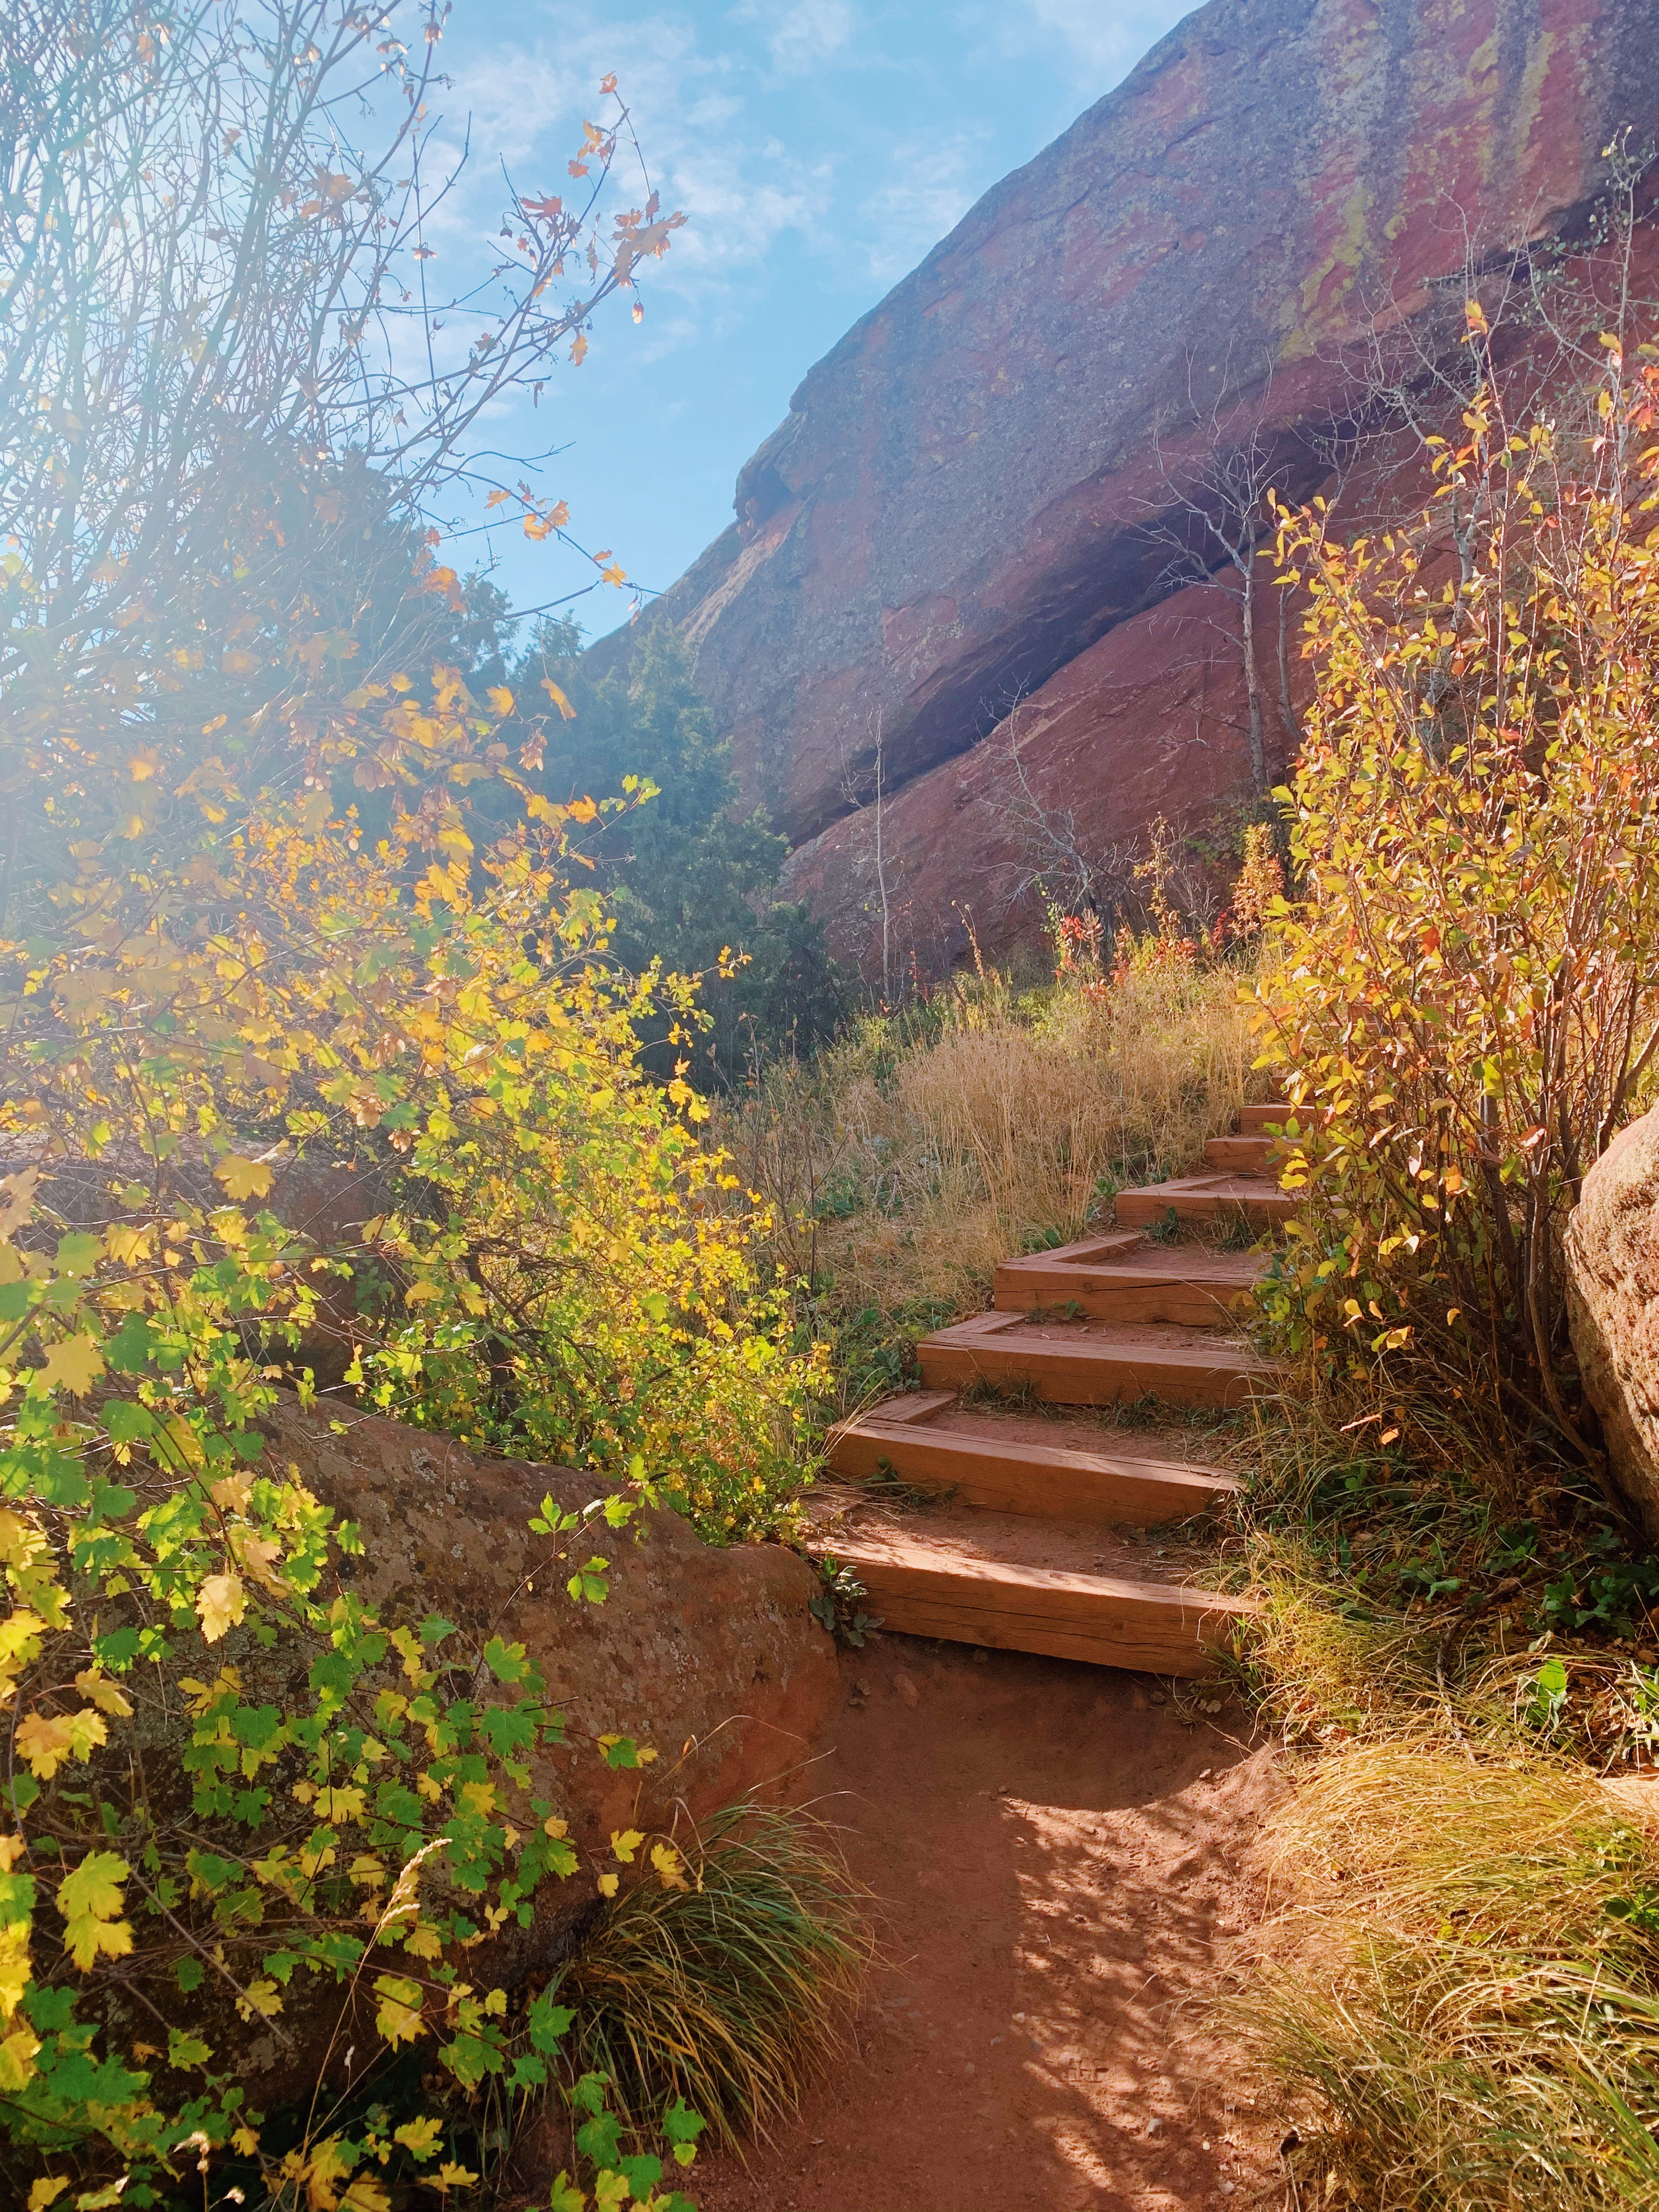 The image is a man-made staircase of wood and rock in Colorado between shrubbery changing for Autumn as the sun shines.